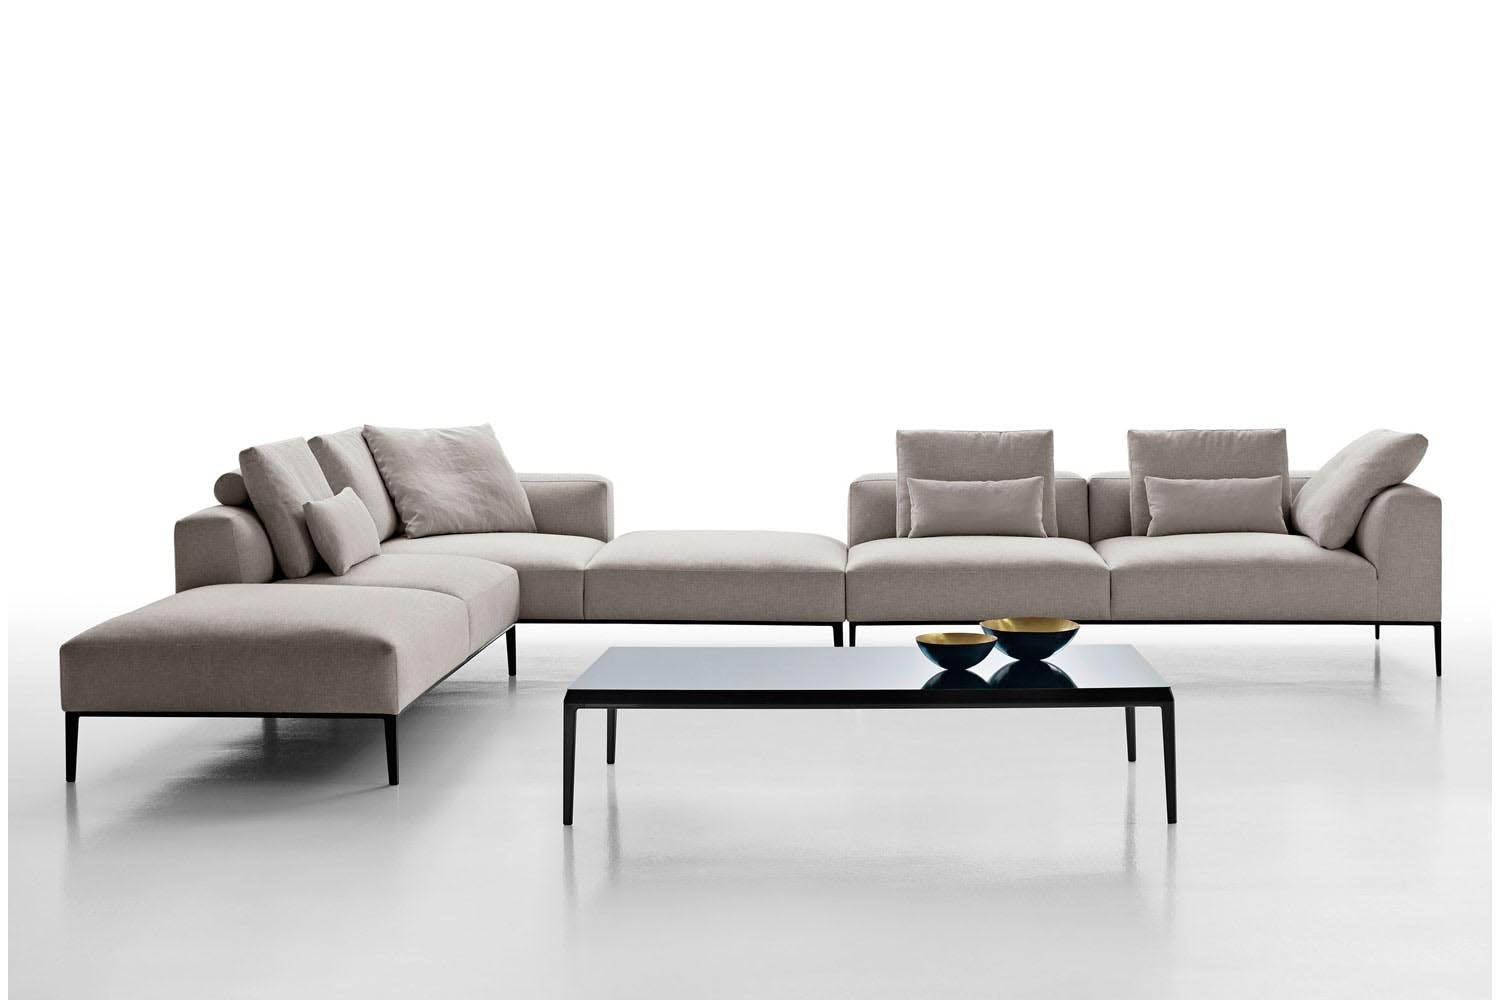 Michel Effe Sofa By Antonio Citterio For B B Italia Space Furniture